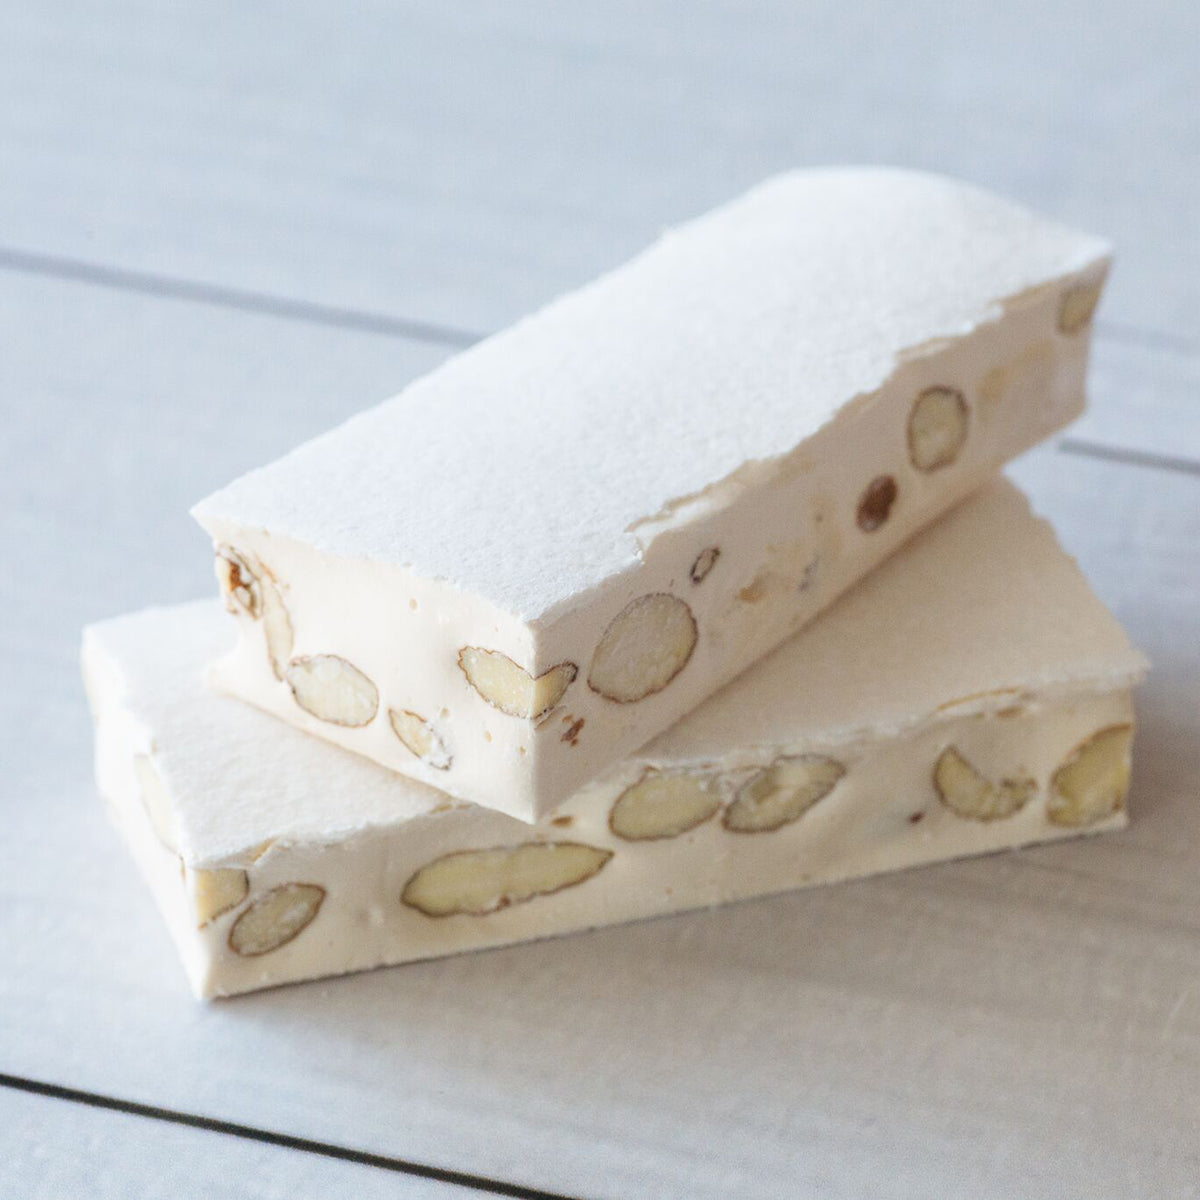 Roasted Almond Nougat - 1.76 oz Bar